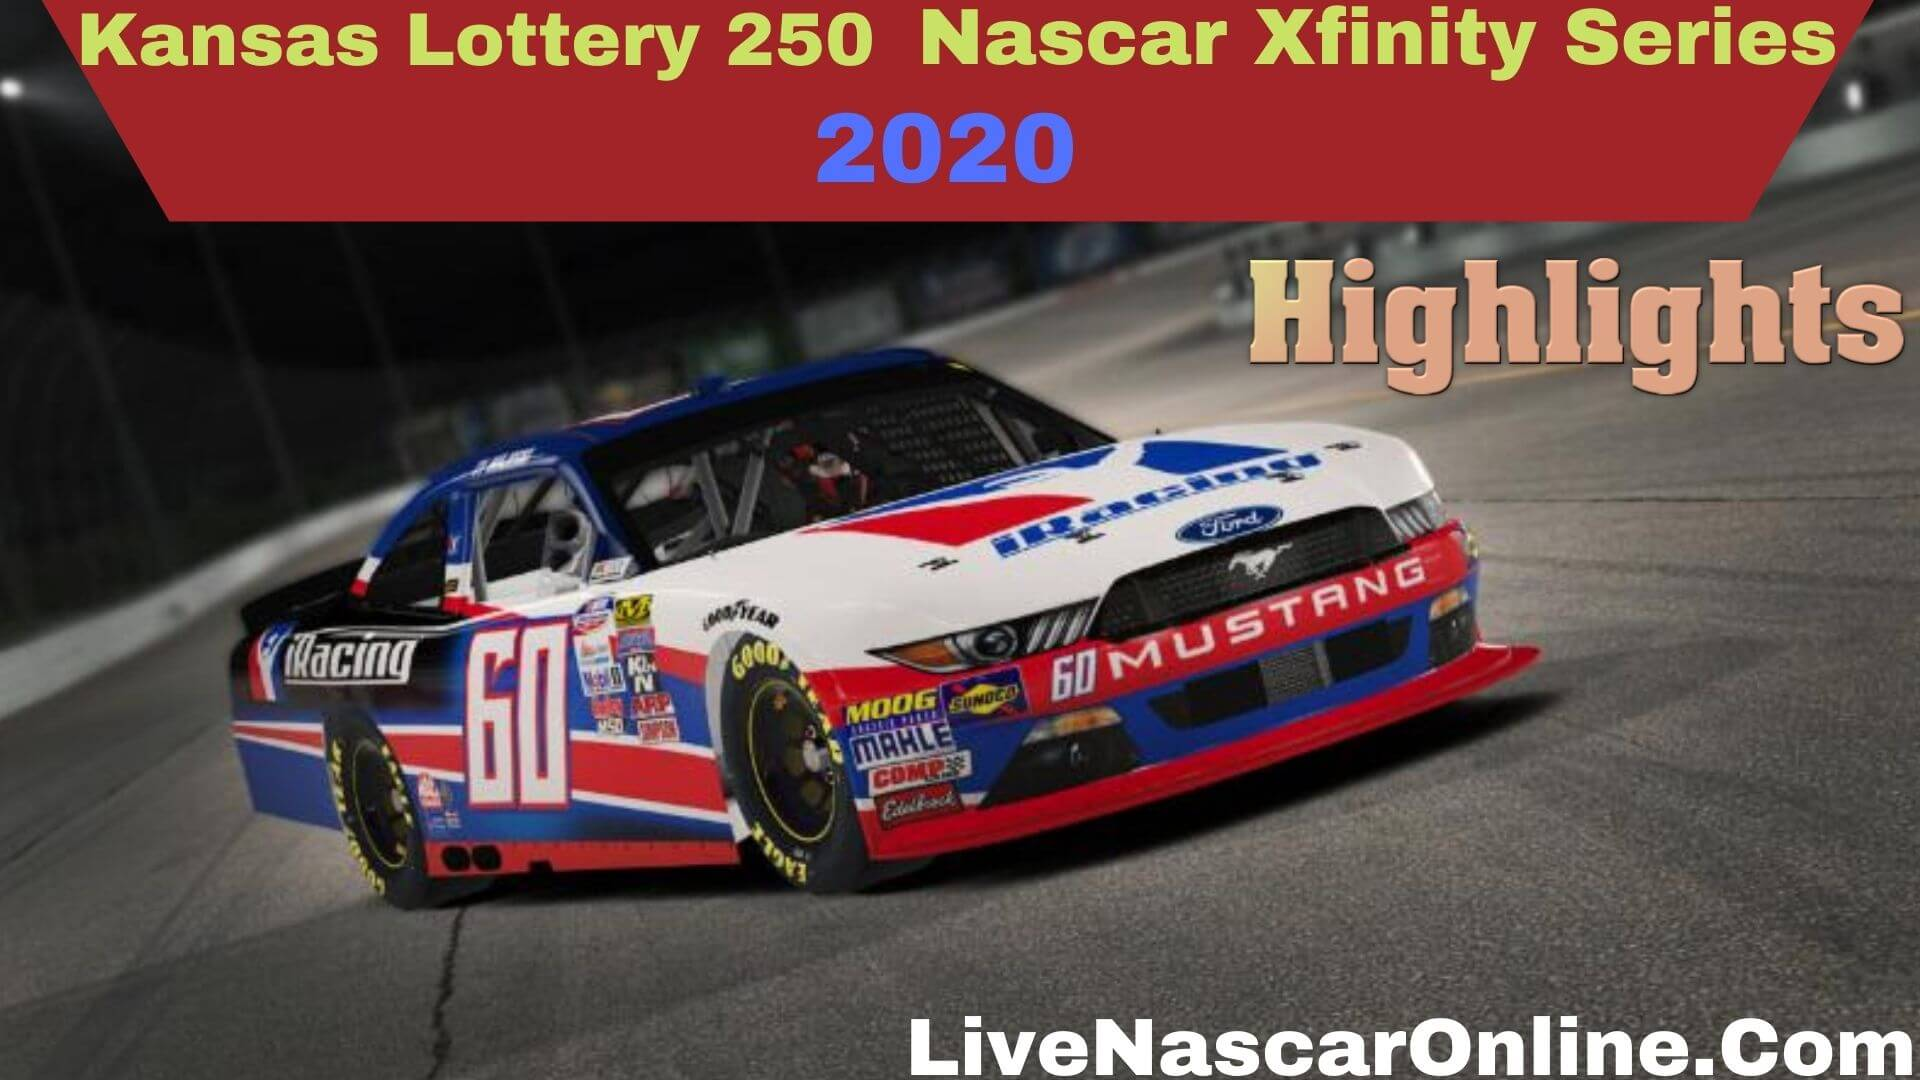 Kansas Lottery 250 Nascar Xfinity Series Highlights 2020